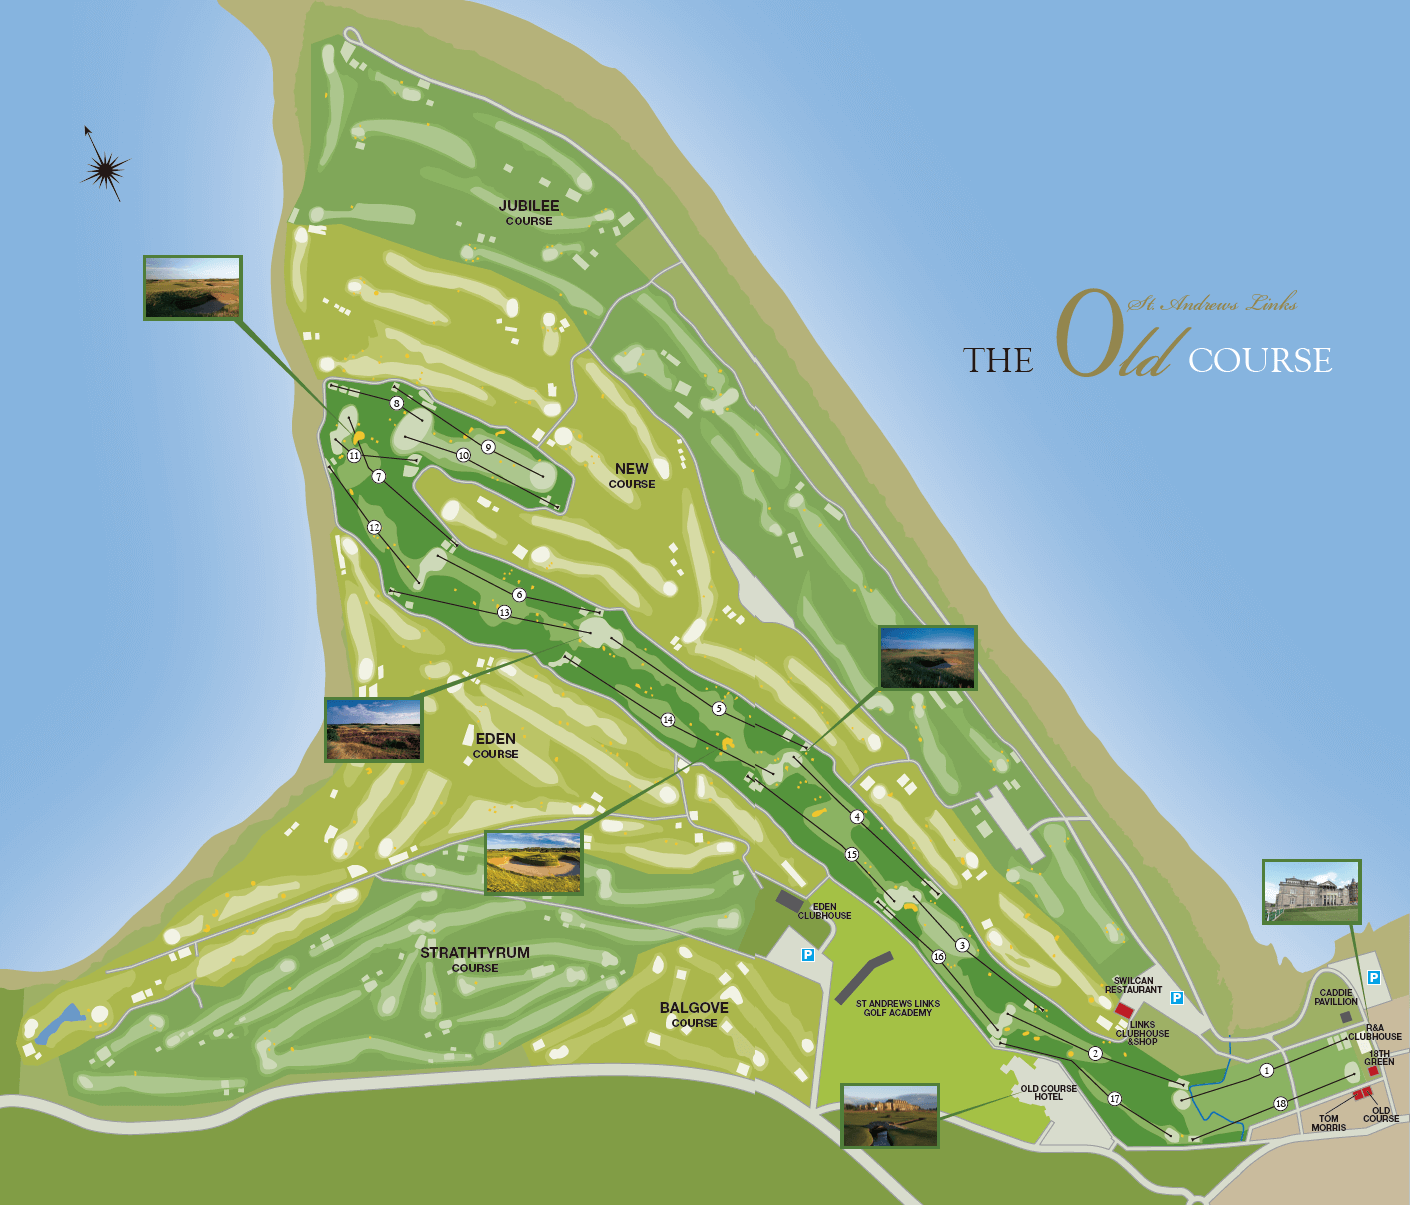 st-andrews-course-map1